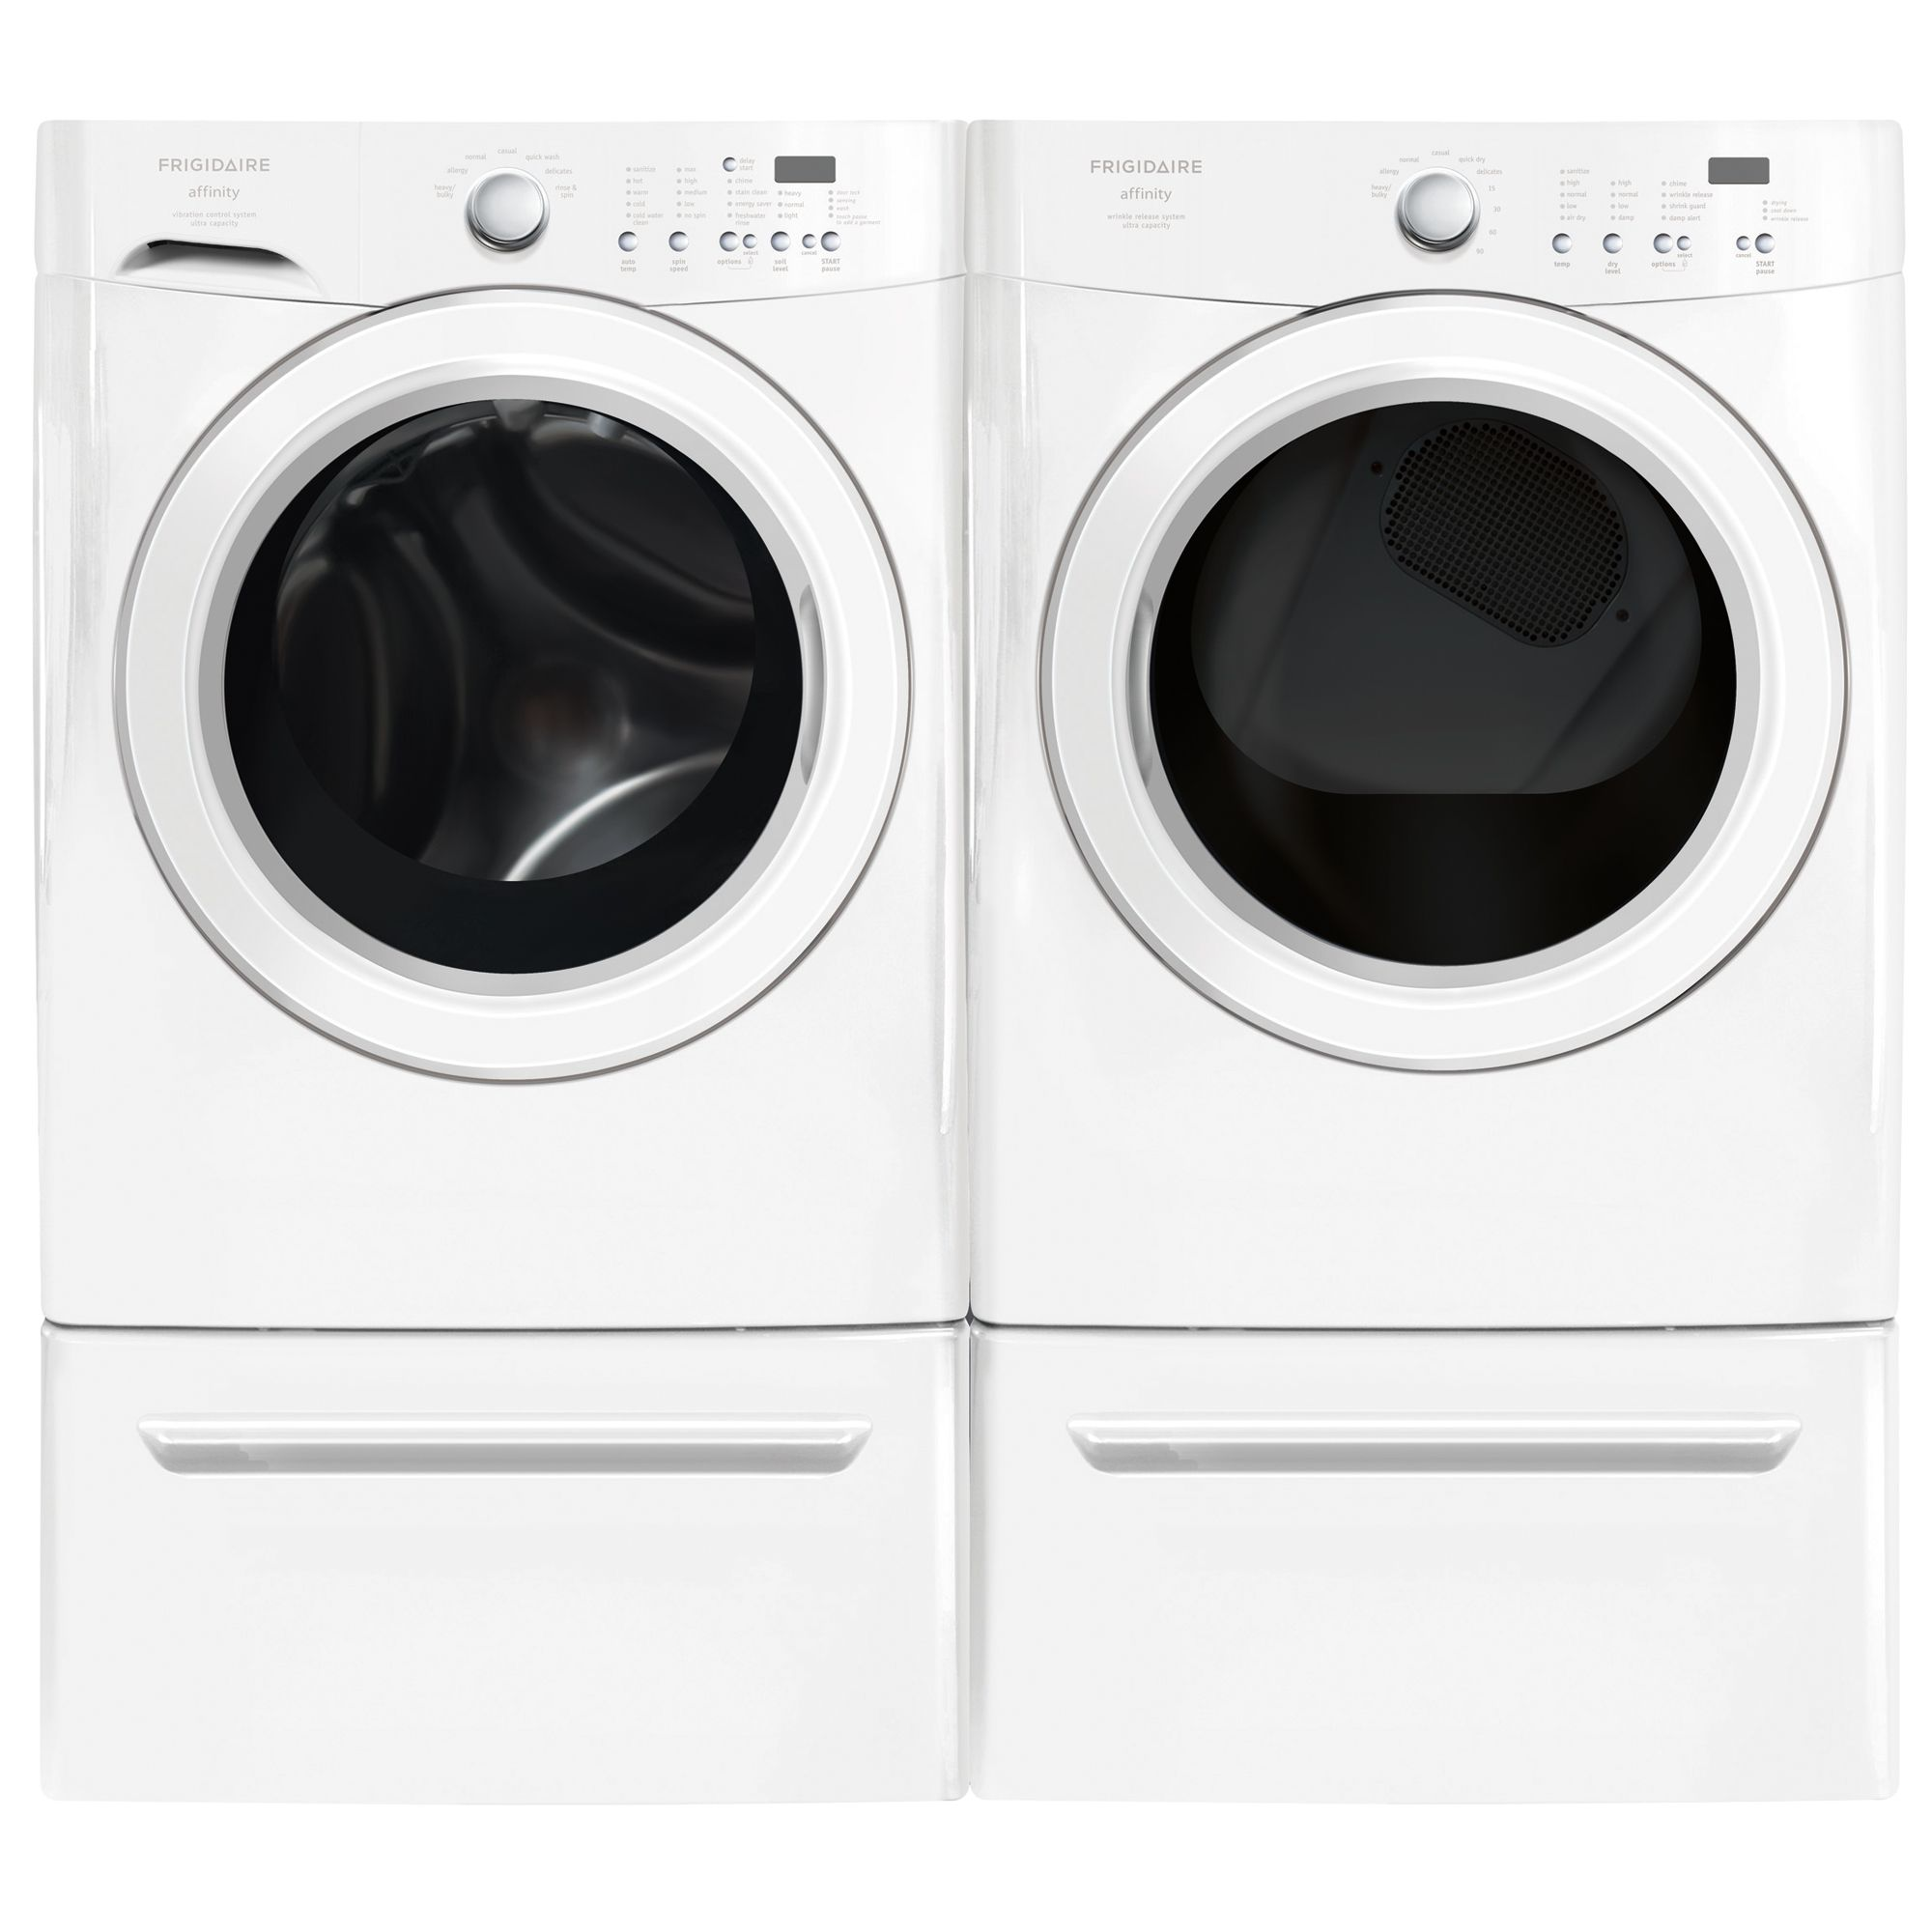 Frigidaire 3.7 cu. ft Washer w/ NSF® Allergy Cycle (Model FAFW4221L)